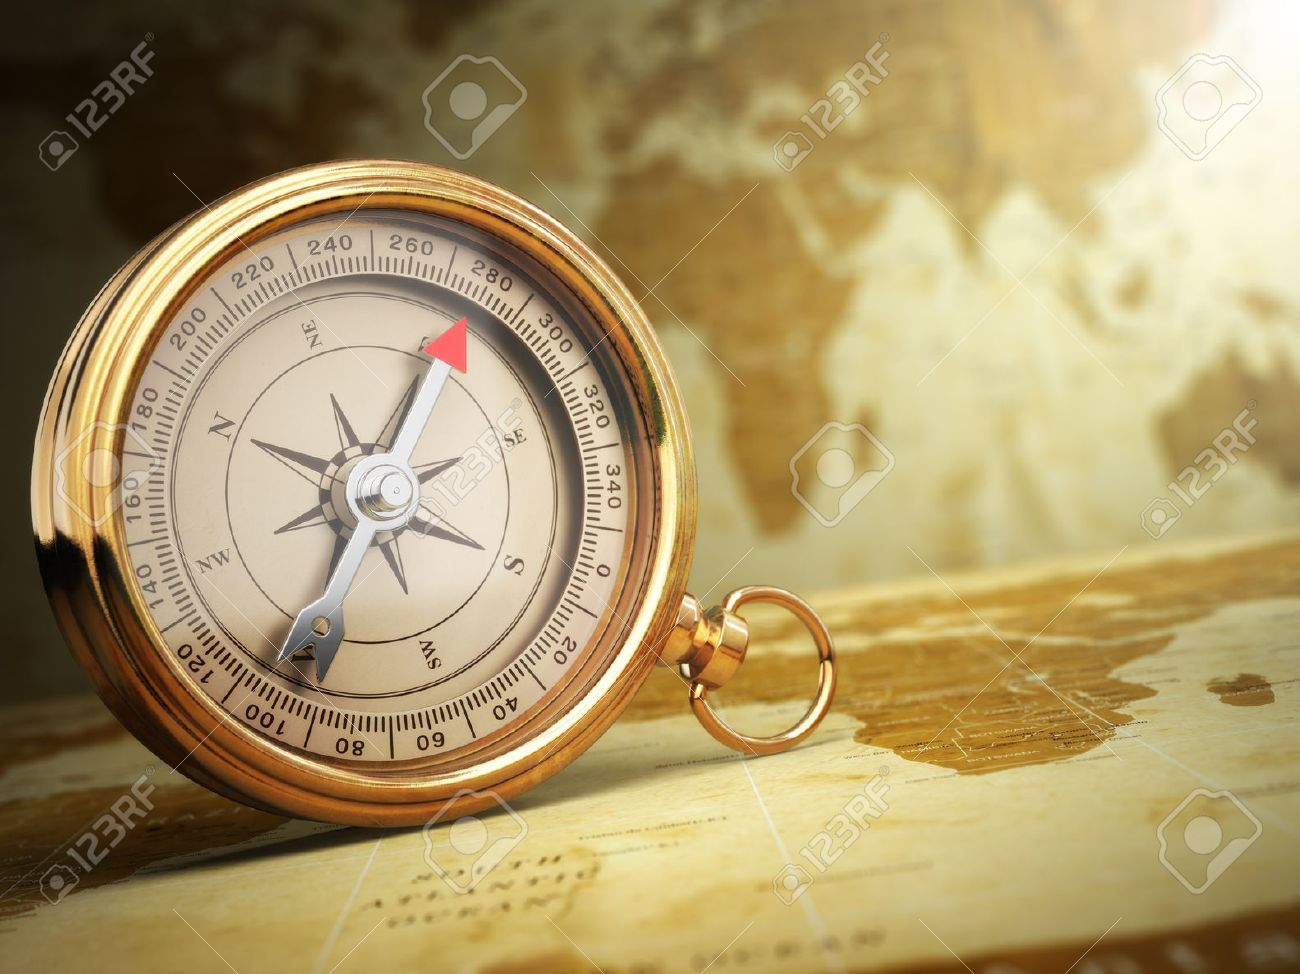 Vintage Compass On The Old World Map Travel Concept 3d Stock Photo